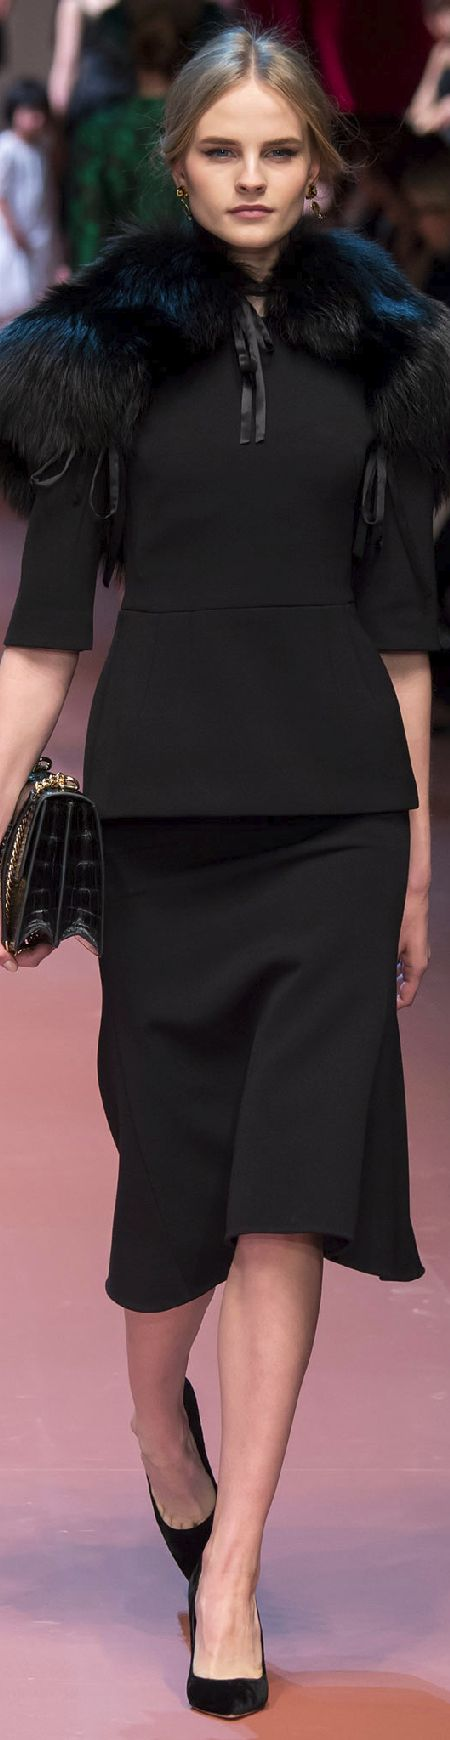 Fall 2015 Ready-to-Wear Dolce & Gabbana